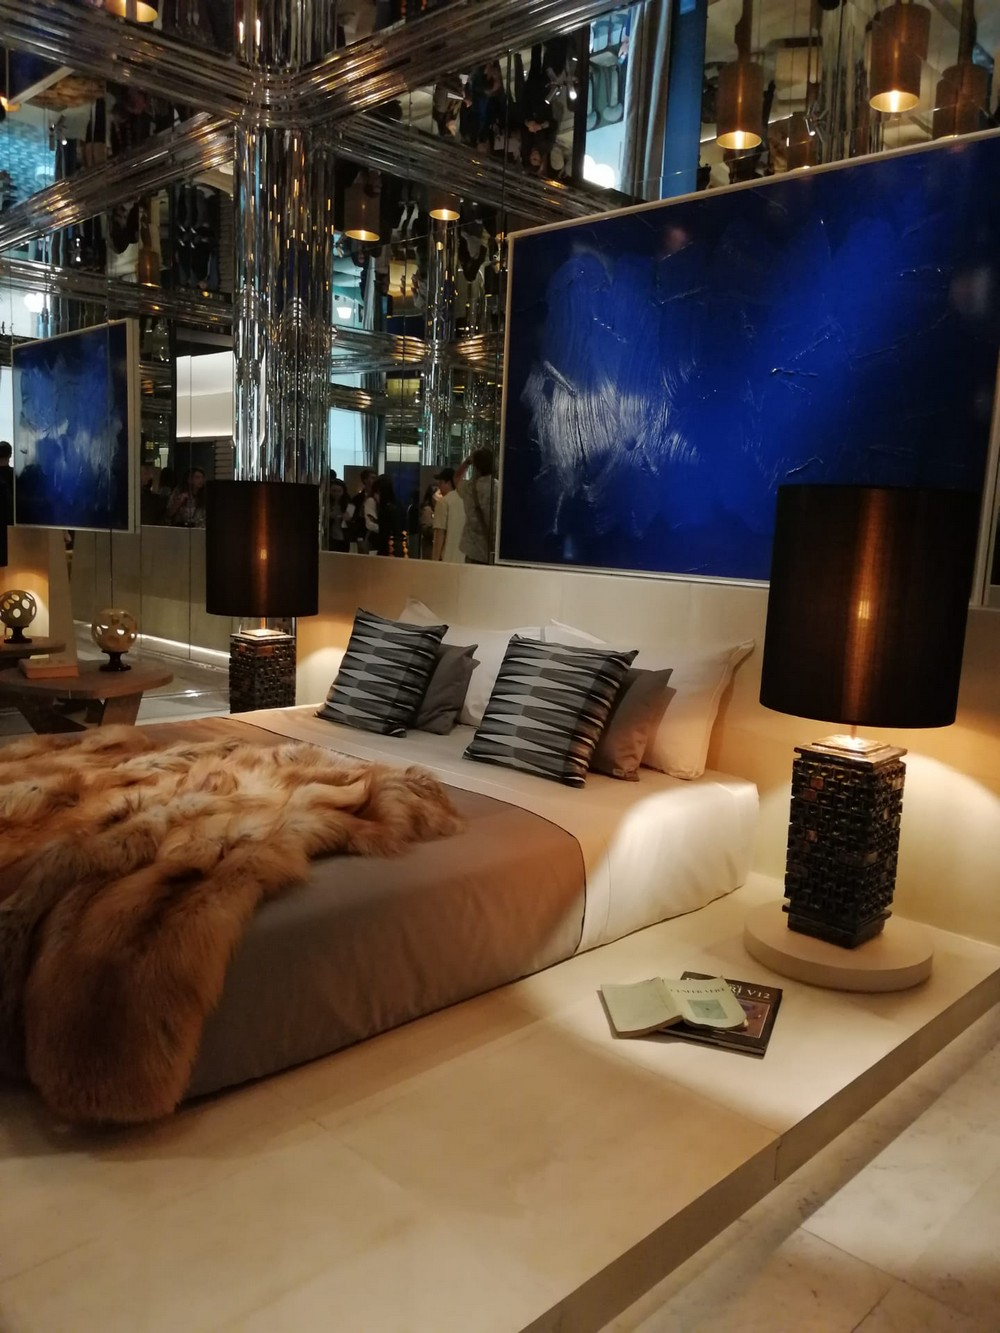 AD Intérieurs 2019 Presented The Best Eclectic Design Inspirations ad intérieurs AD Intérieurs 2019 Presented The Best Eclectic Design Inspirations AD Int  rieurs 2019 Presented The Best Eclectic Design Inspirations 2